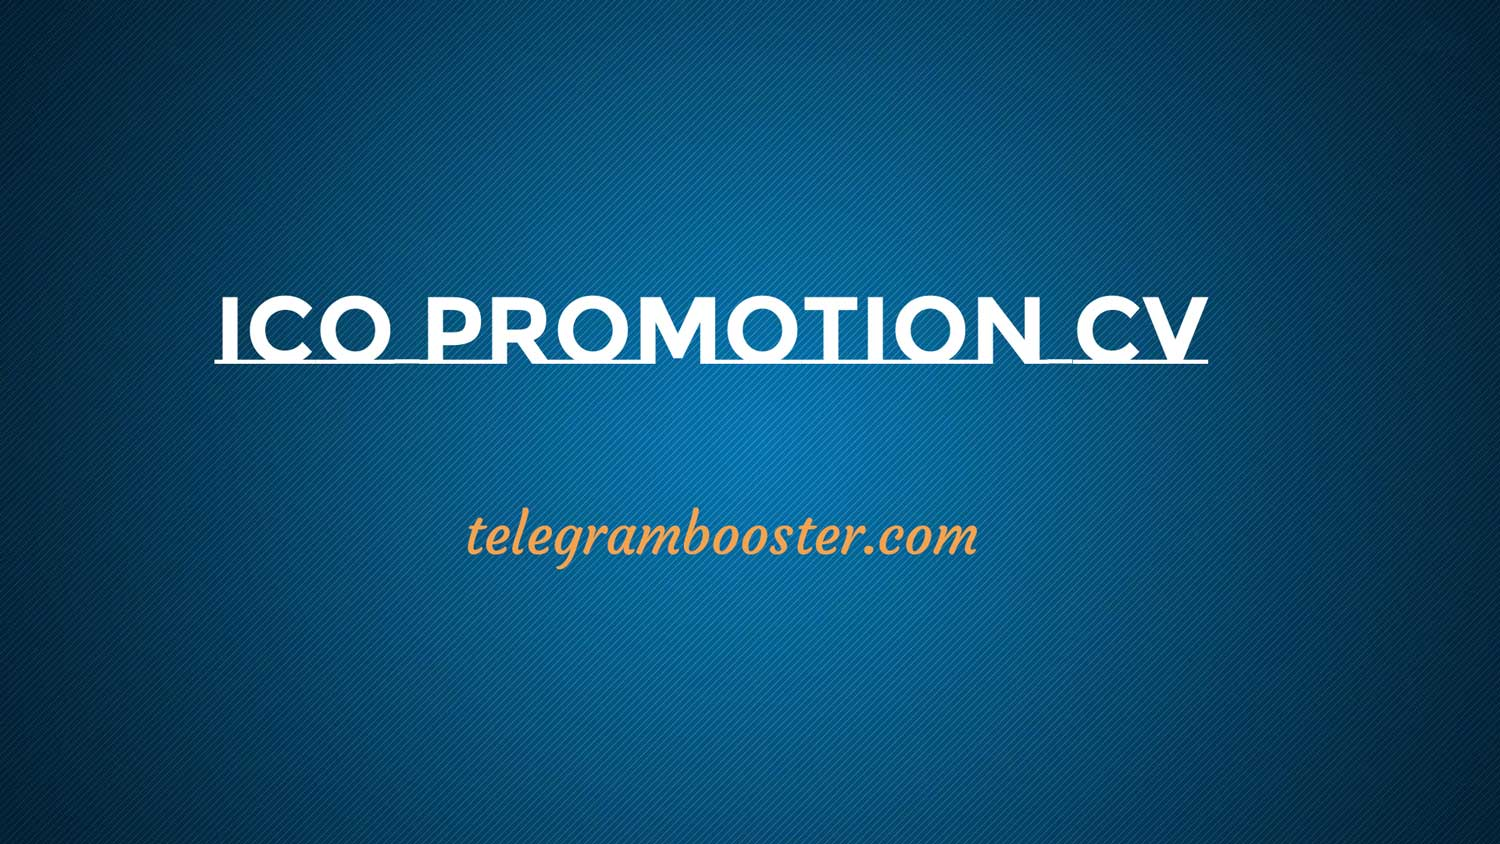 Our ico promotion CV - Buy Real Telegram Members for Crypto group ...